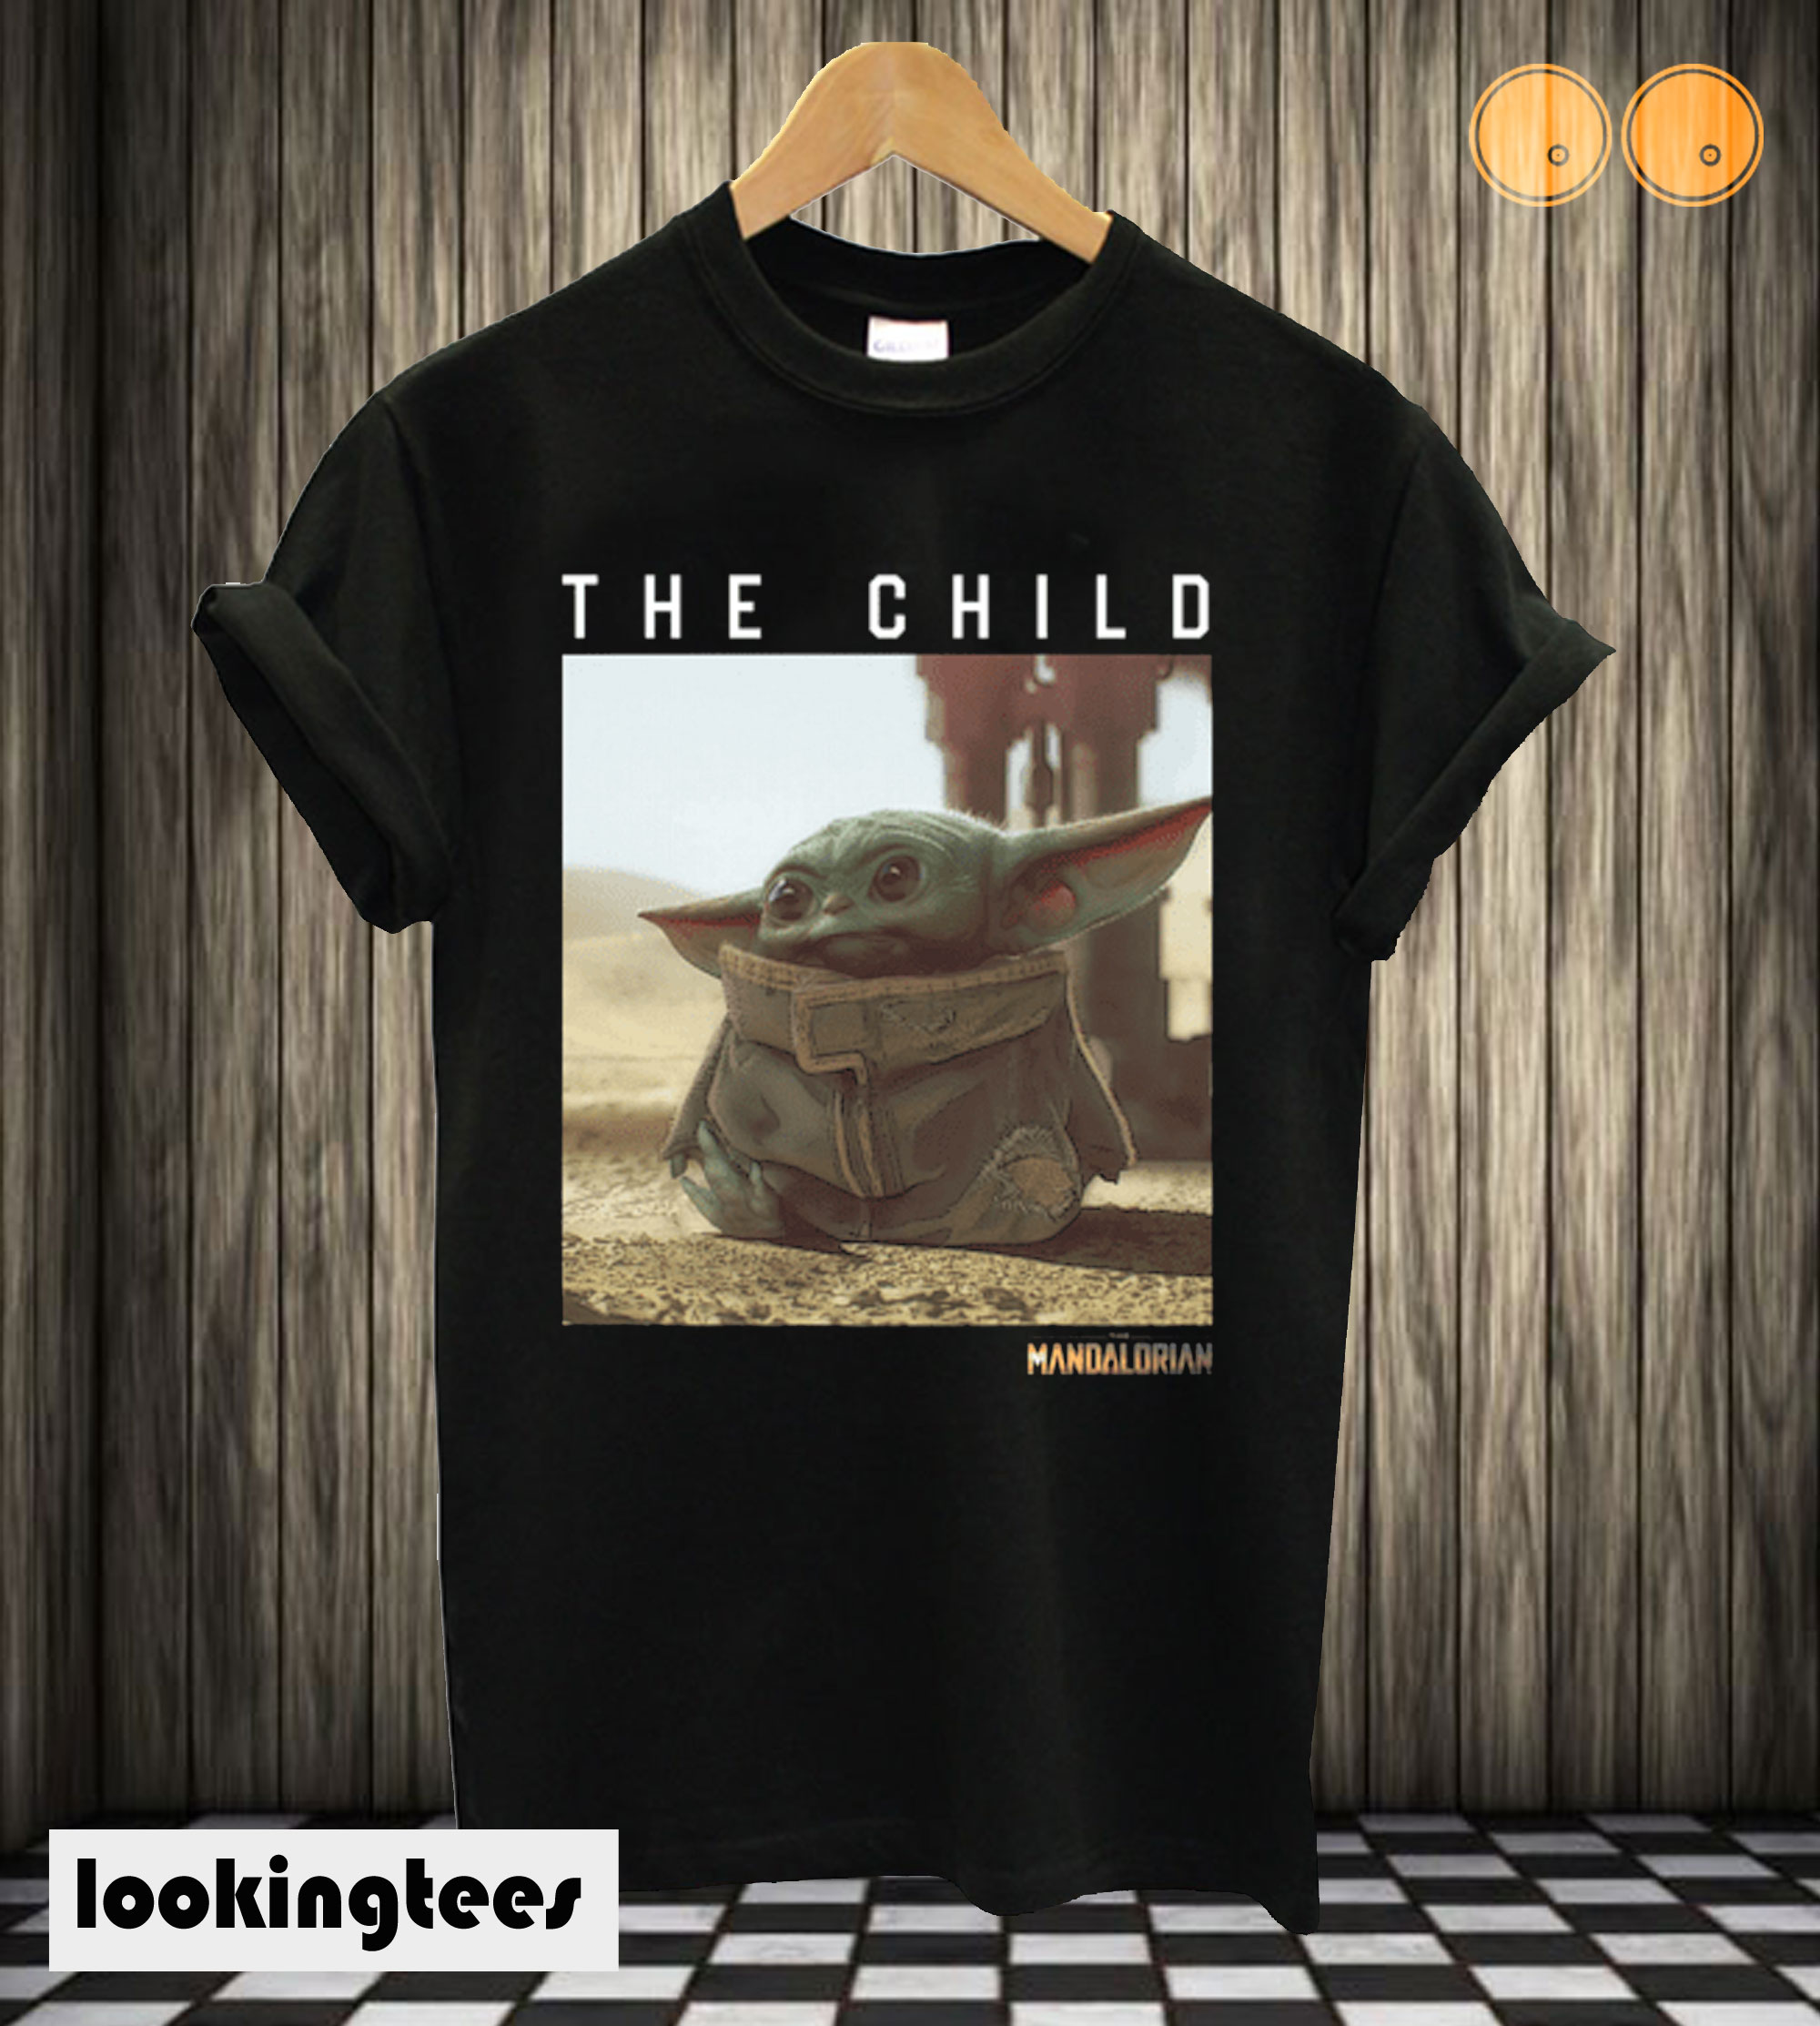 The Child Star Wars Mandalorian Baby Yoda T shirt